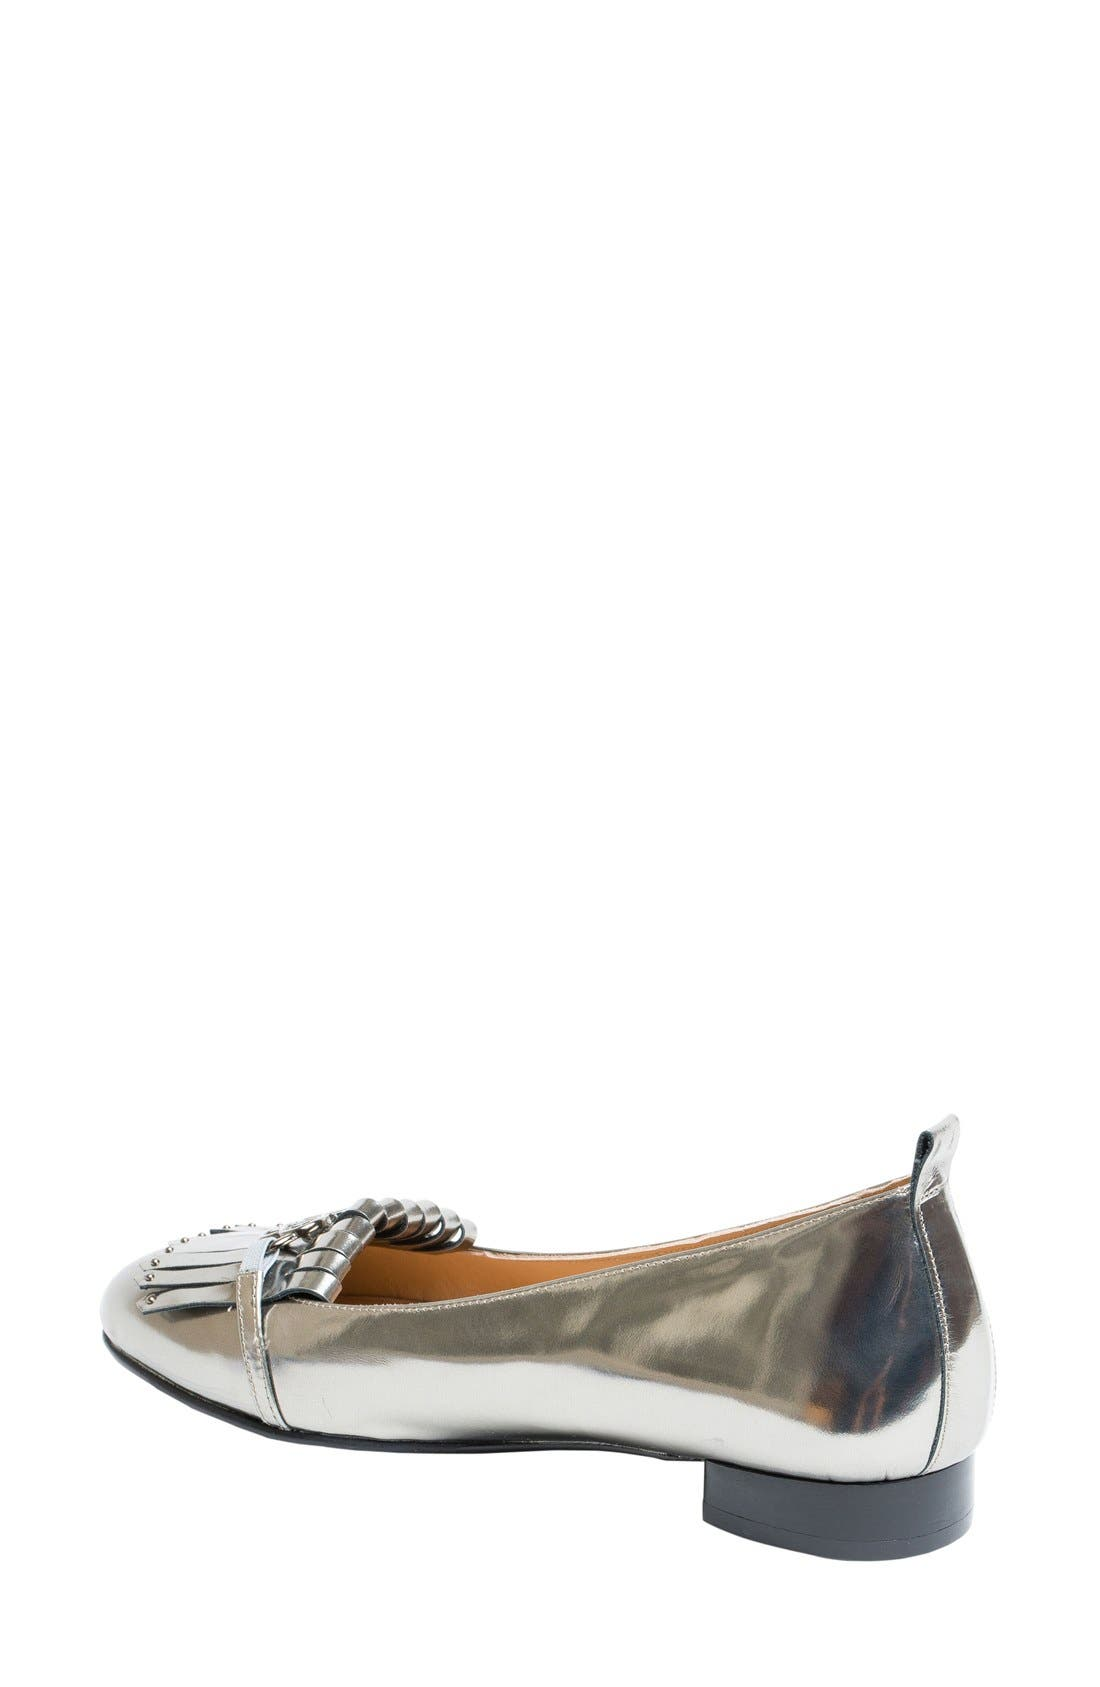 Alternate Image 2  - UKIES Leona Kiltie Loafer (Women)